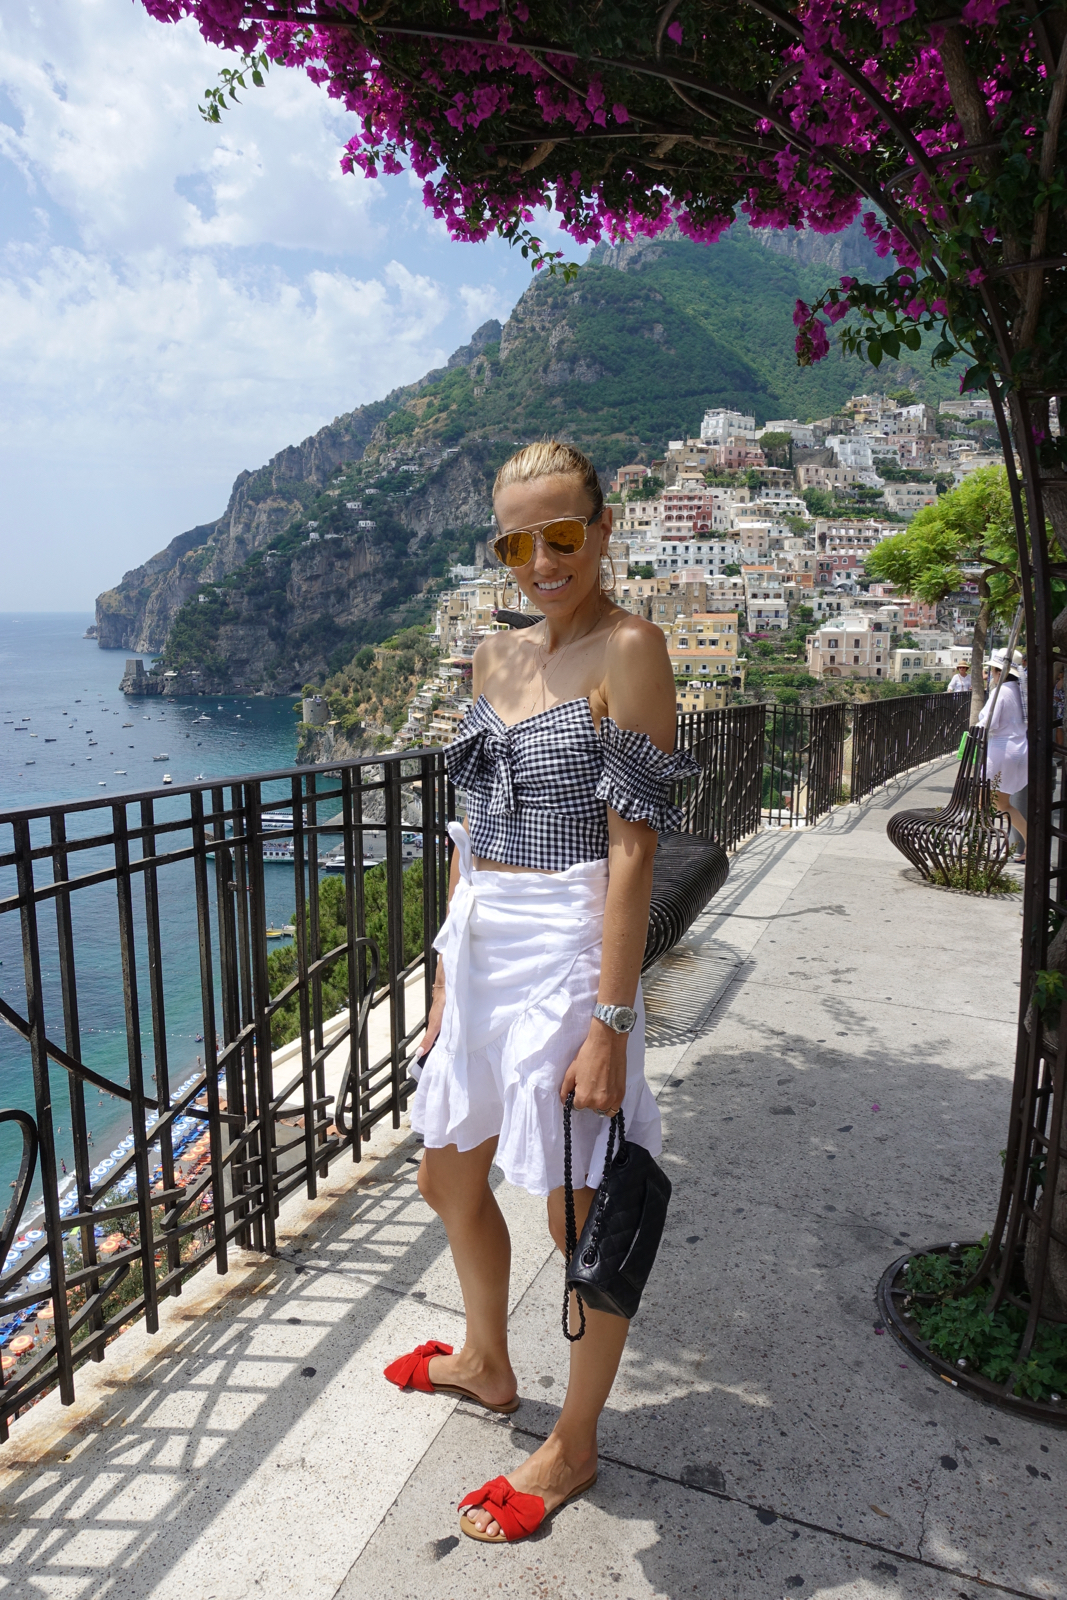 Positano, Il San Pietro, Traveling to Positano, What to see and do in Positano, Amalfi Coast